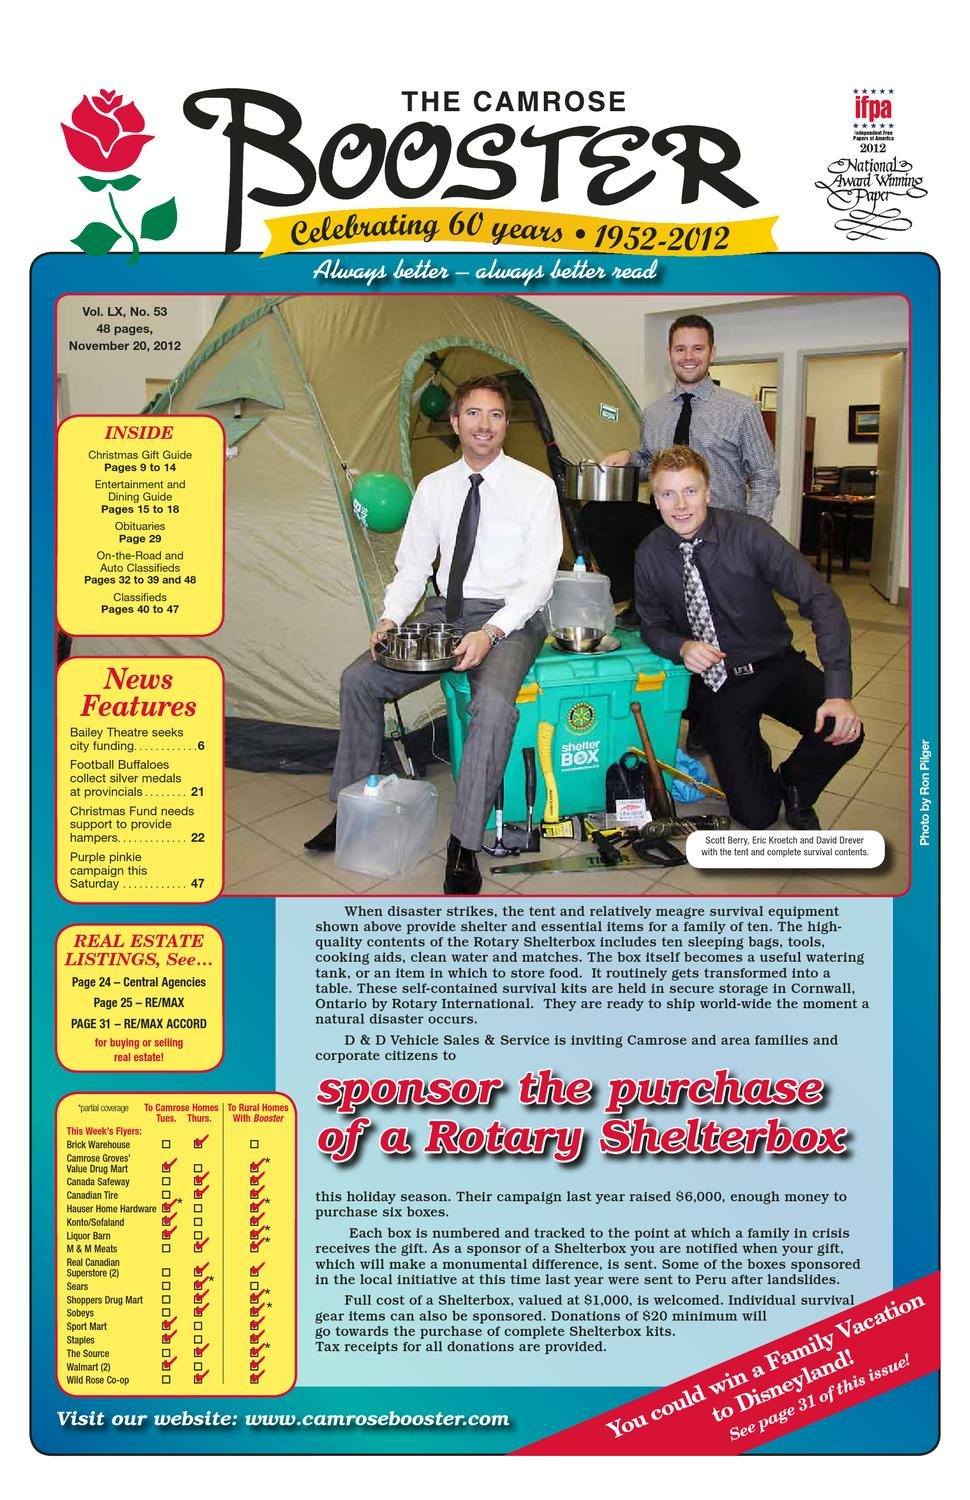 The Camrose Booster, November 20, 2012 by The Camrose Booster - issuu